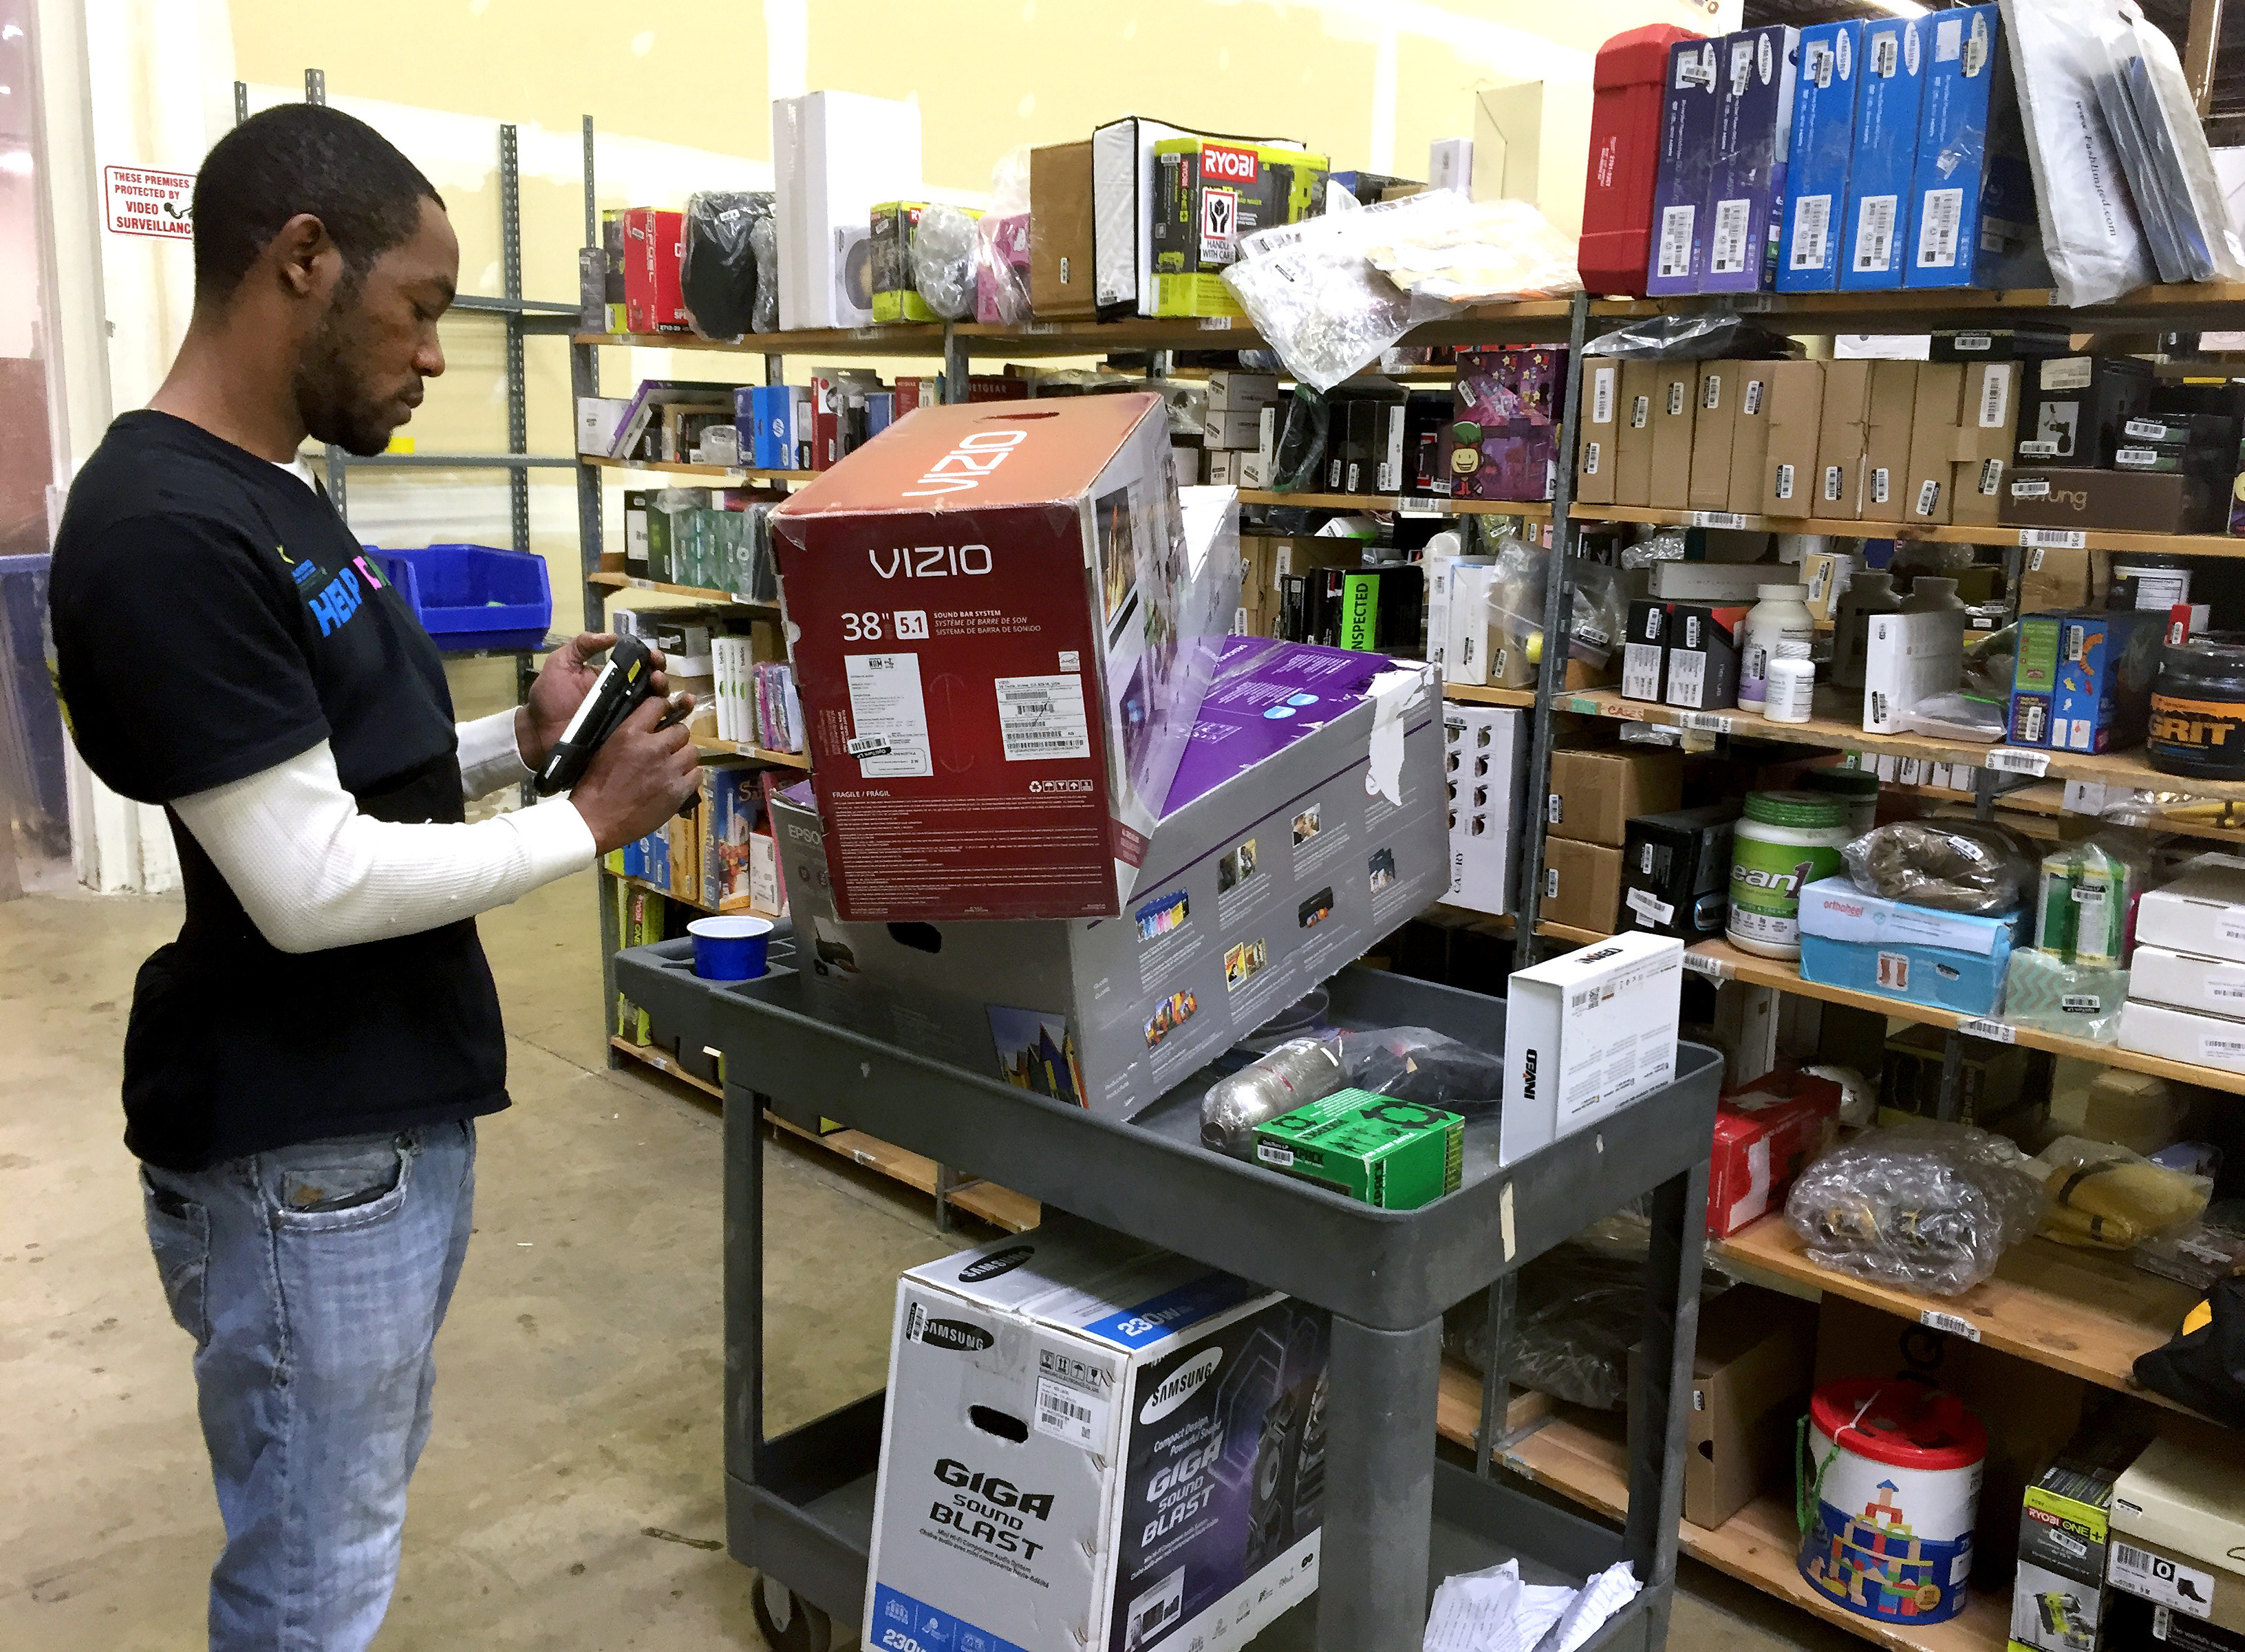 Maryland Startup Redirects River Of Rejected Gifts